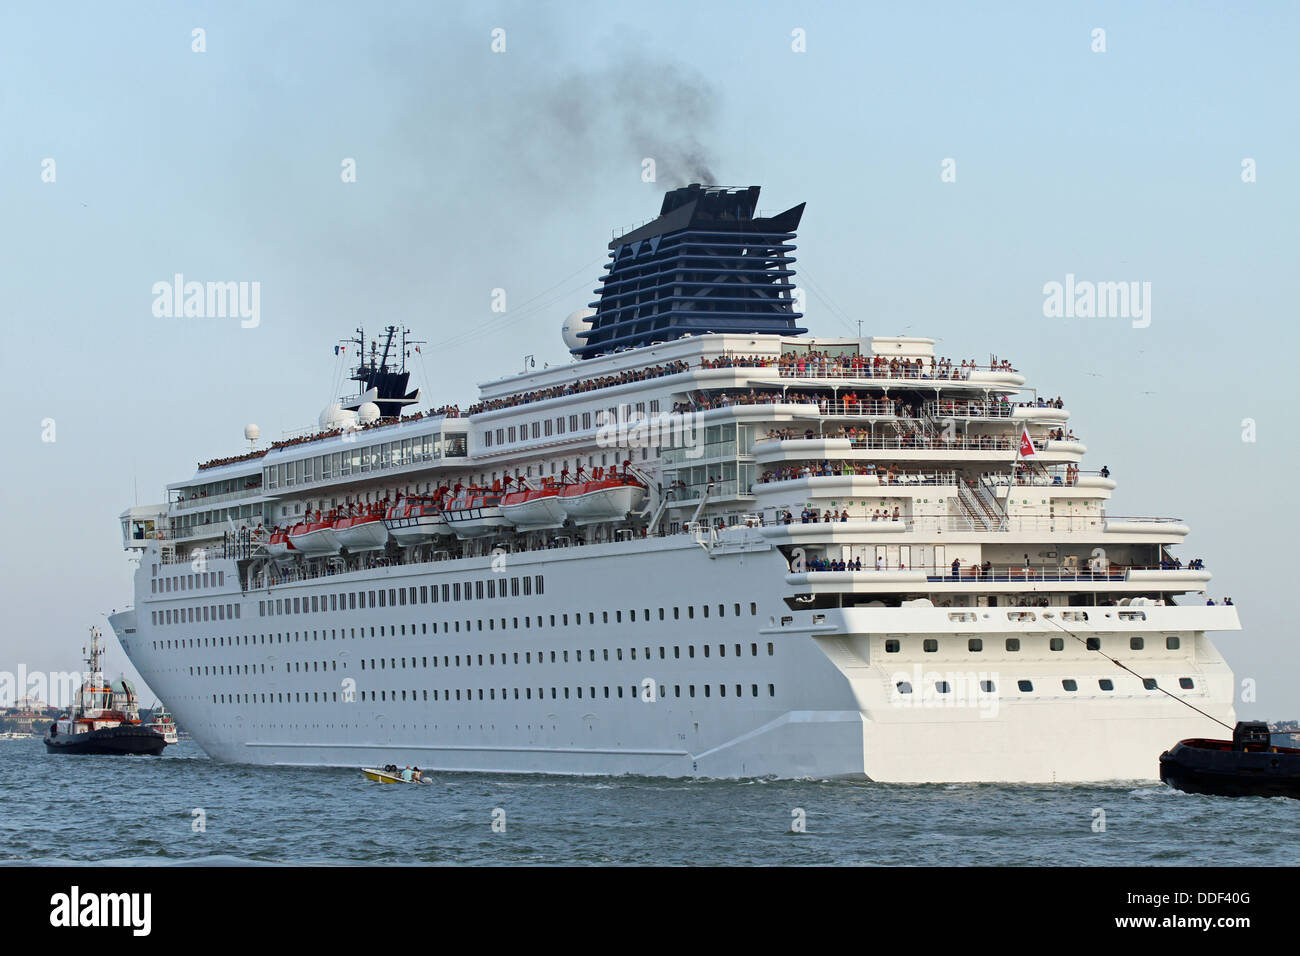 Huge Cruise Ship Leaves The Port City With The Help Of Powerful - Huge cruise ship